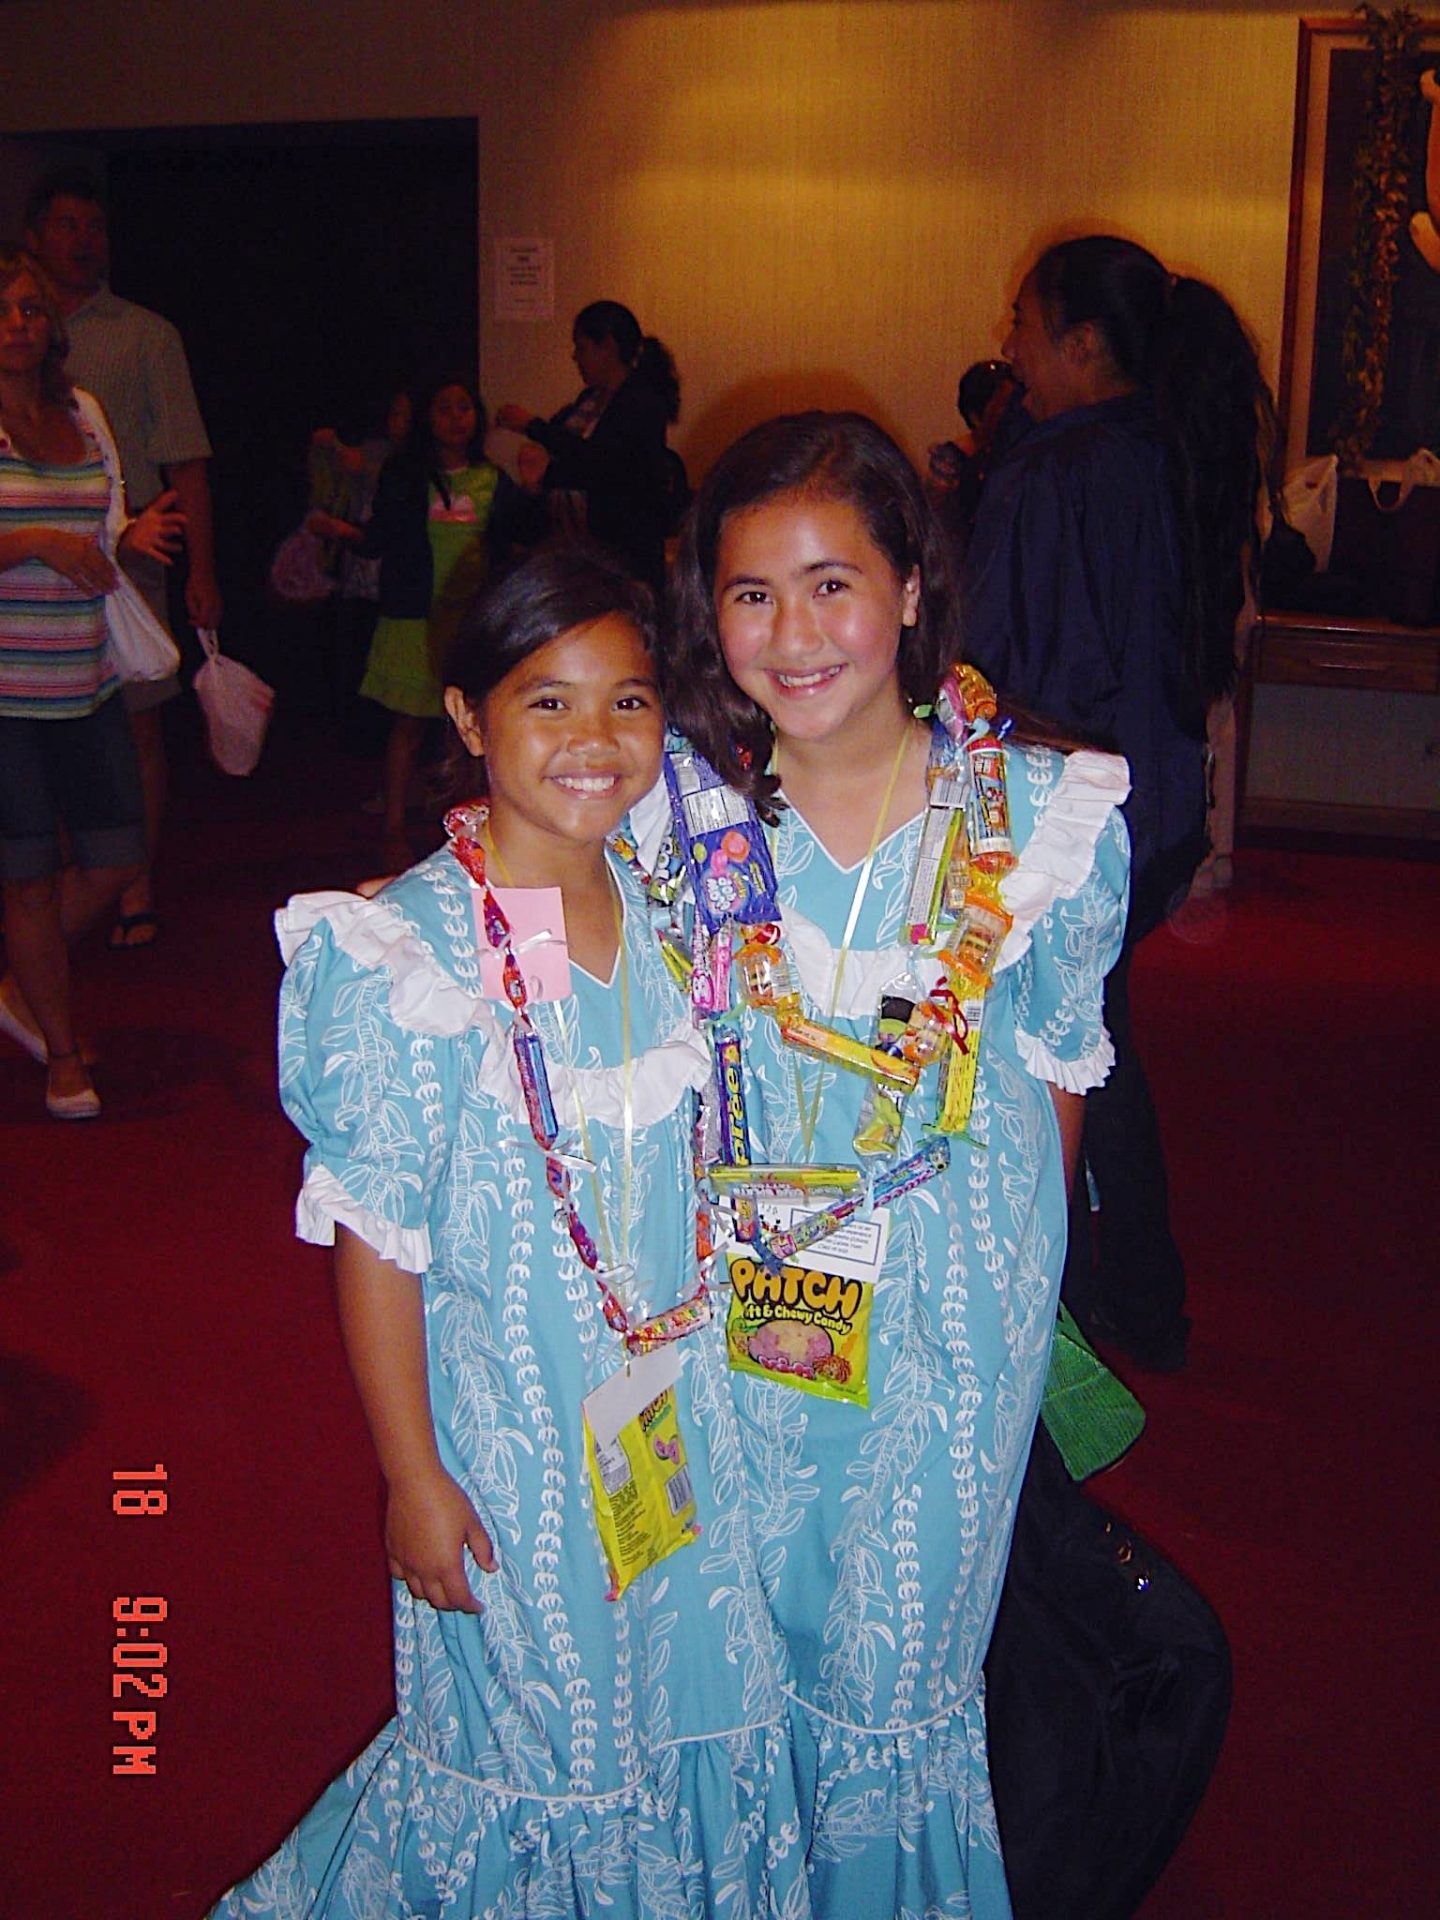 Noelle and Kaiʻolu in fourth grade